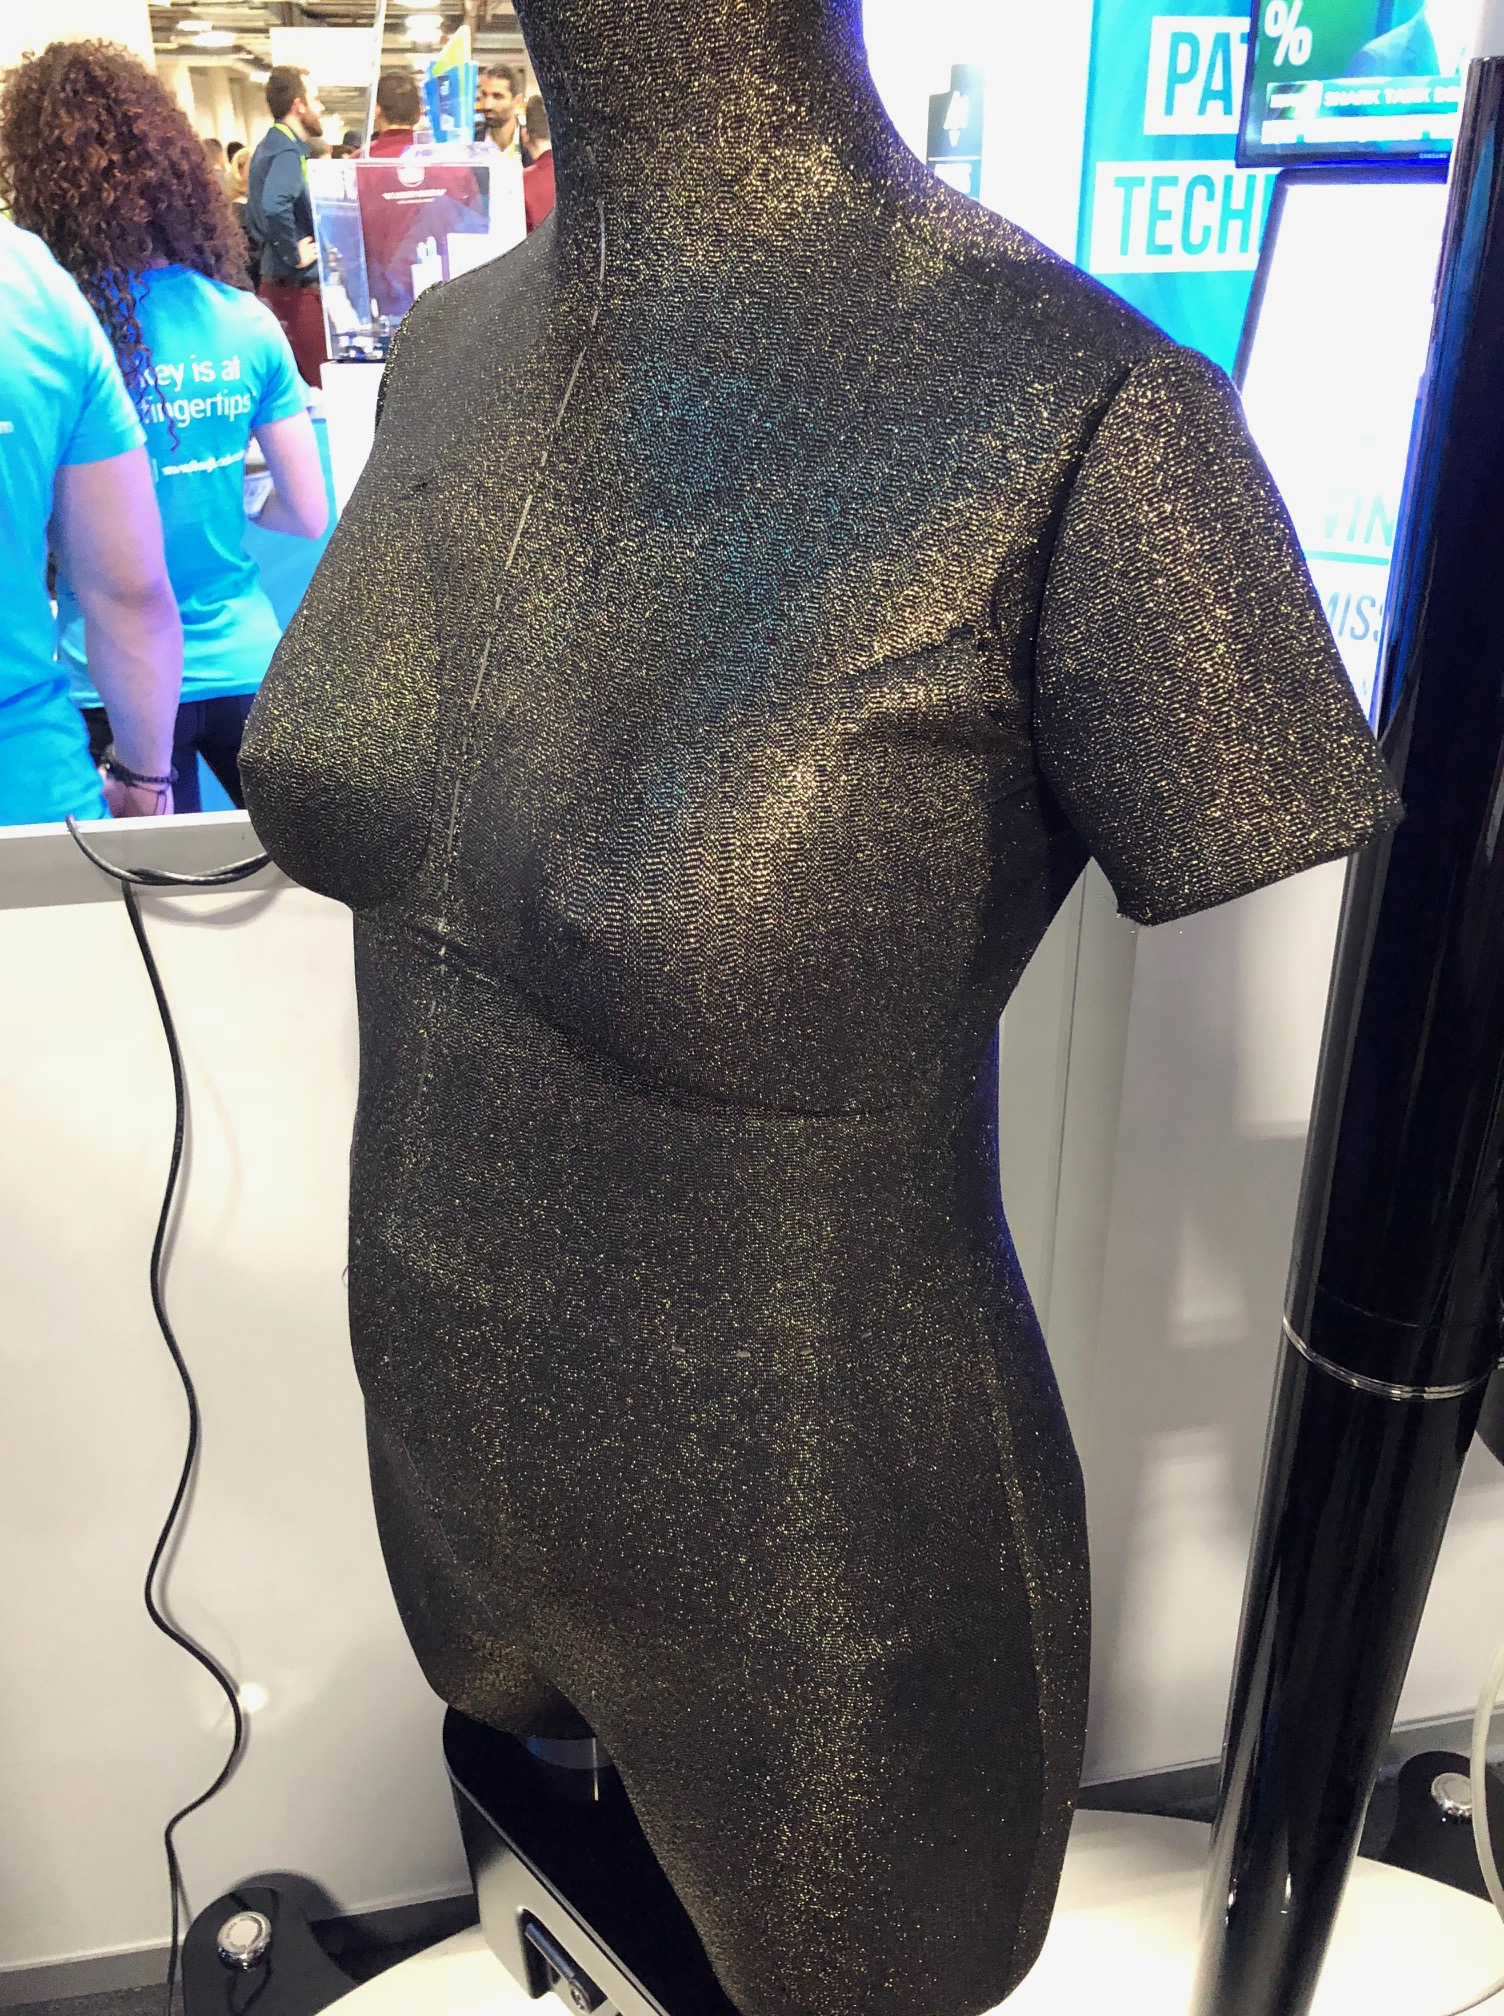 Euveka's robot mannequin, shown at CES 2018, can adjust its size to fit different body types.